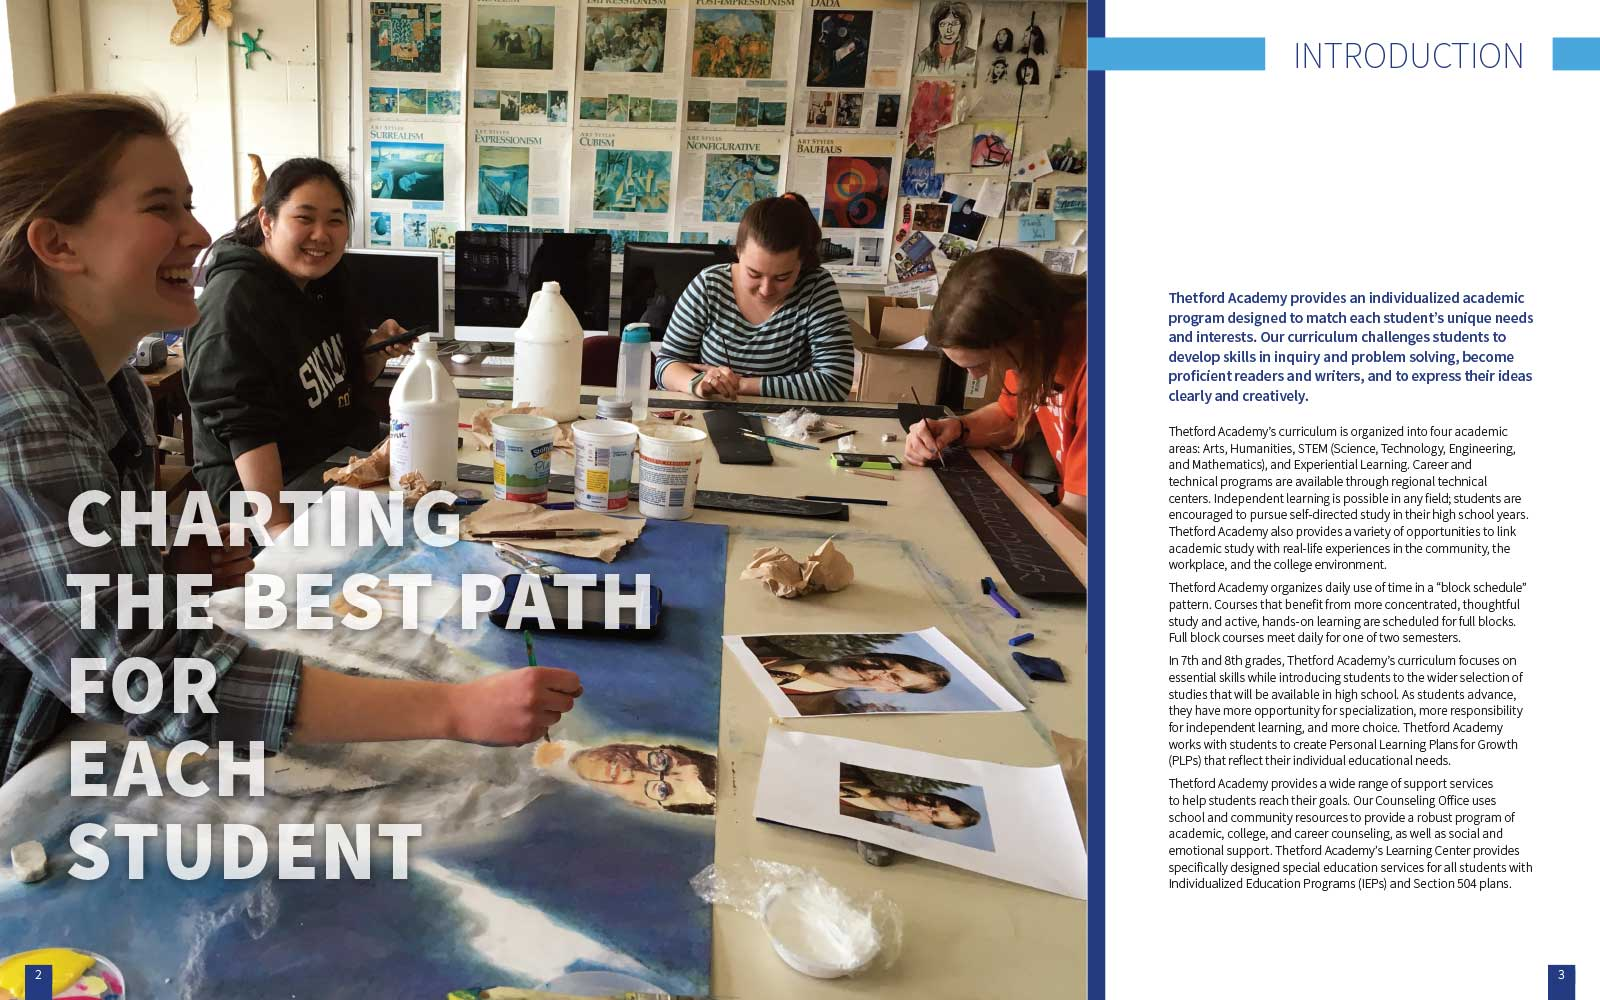 four happy laughing students sitting at a large classroom table making art next to copy promoting Thetford Academy